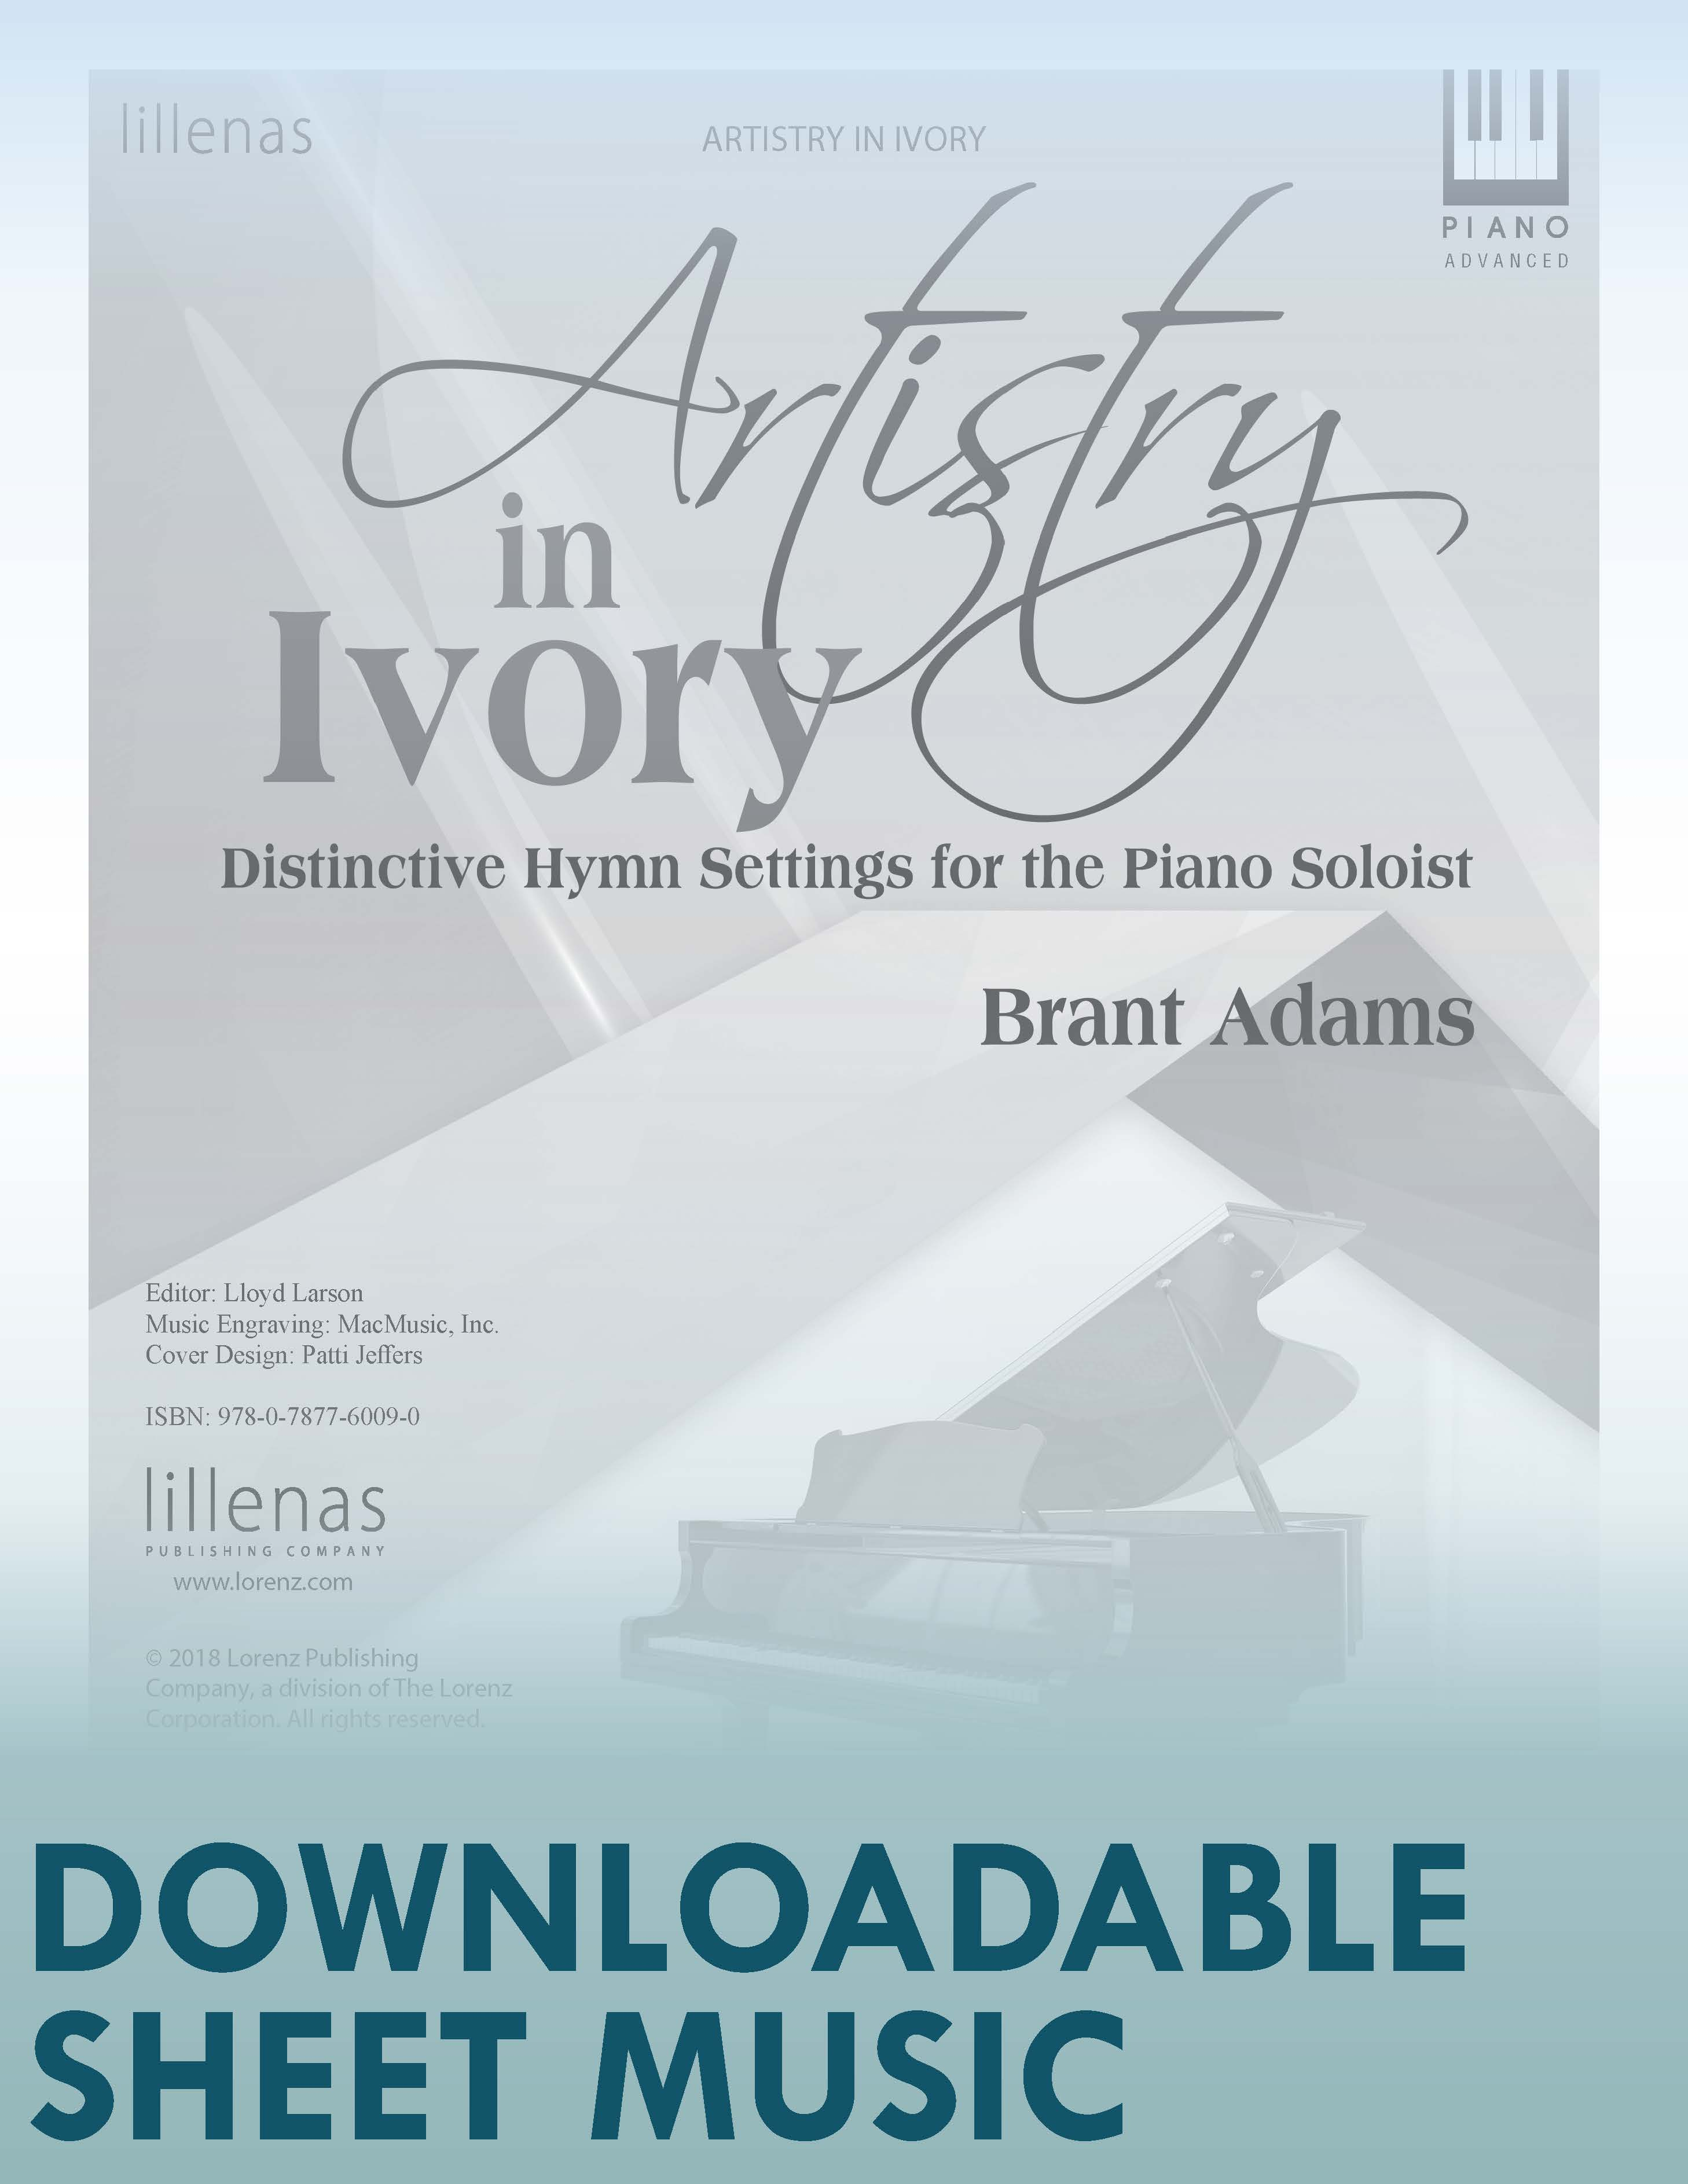 Artistry in Ivory (Digital Delivery)